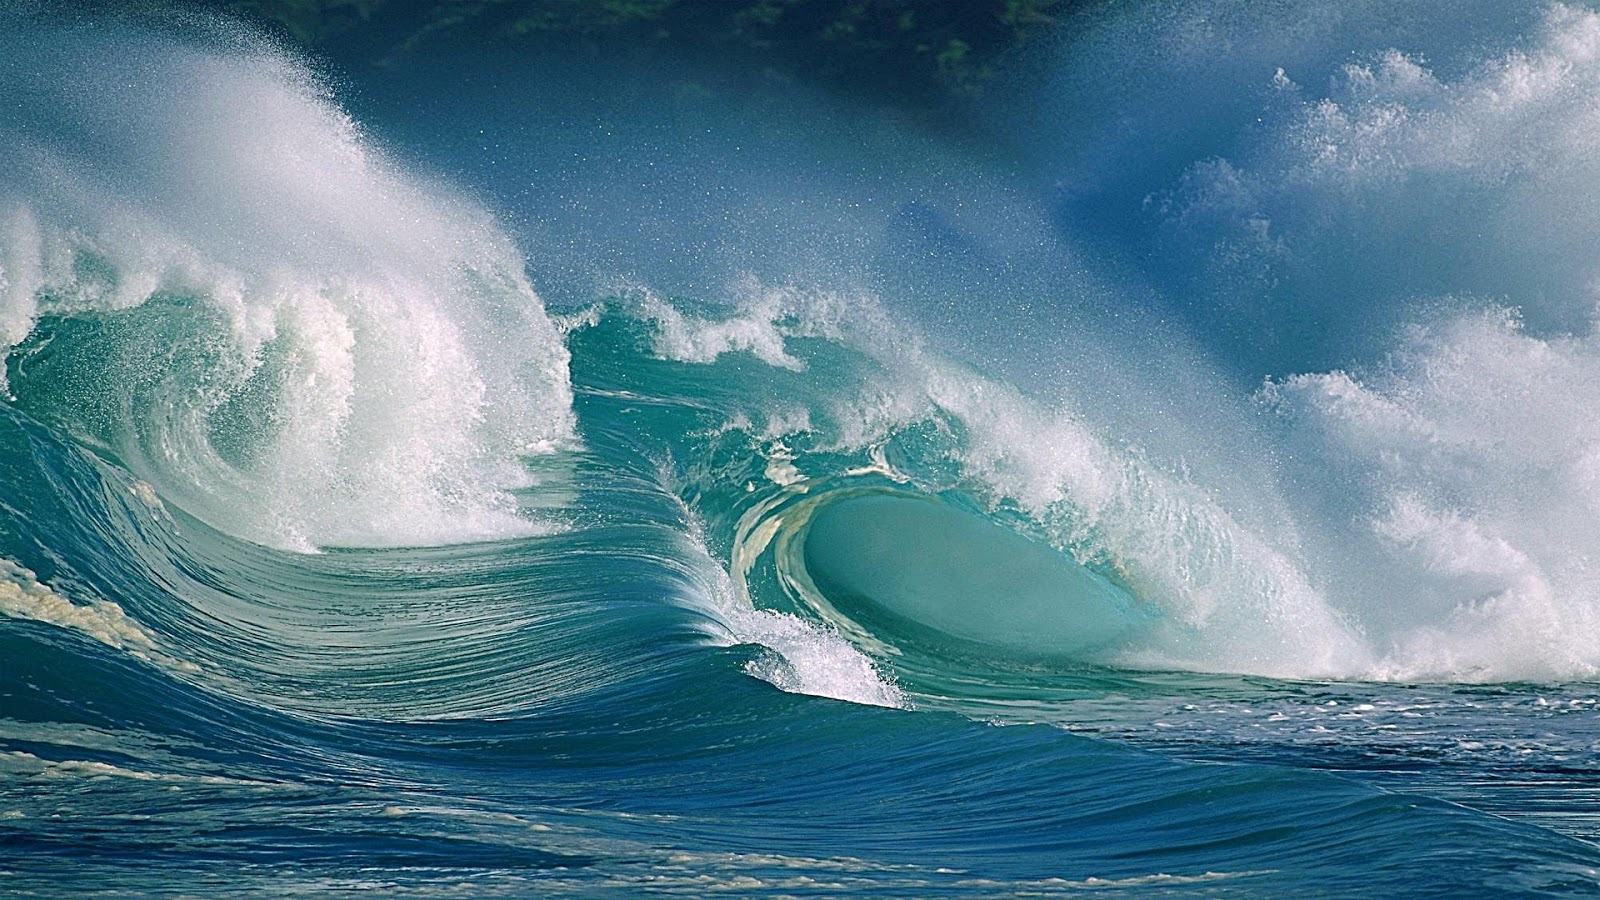 Awesome Ocean Surf Windows 8 Desktop Hd Wallpapers 1920x1080 picture 1600x900